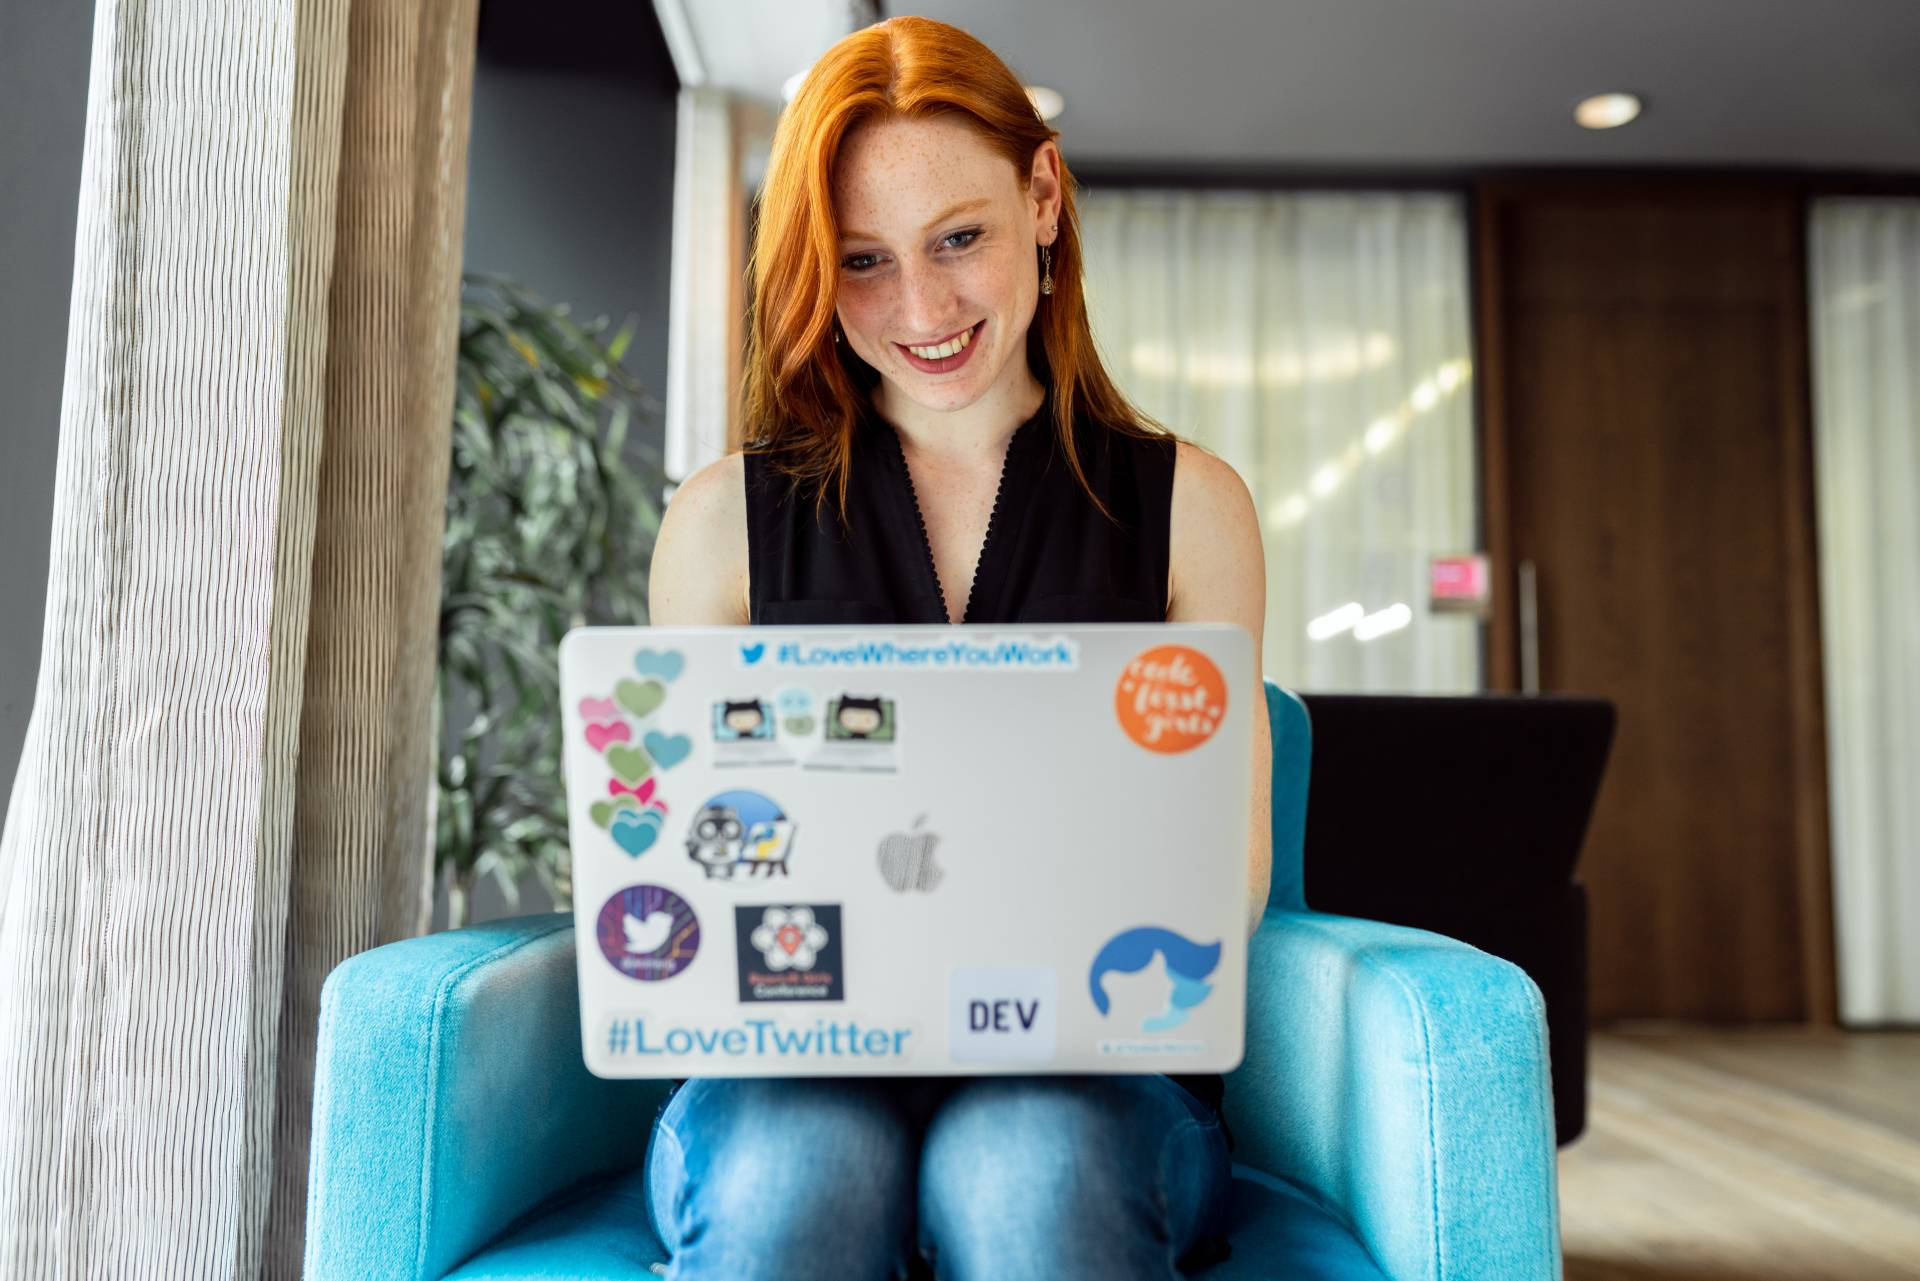 4 Best Practices To Help Digital Marketers Work From Home